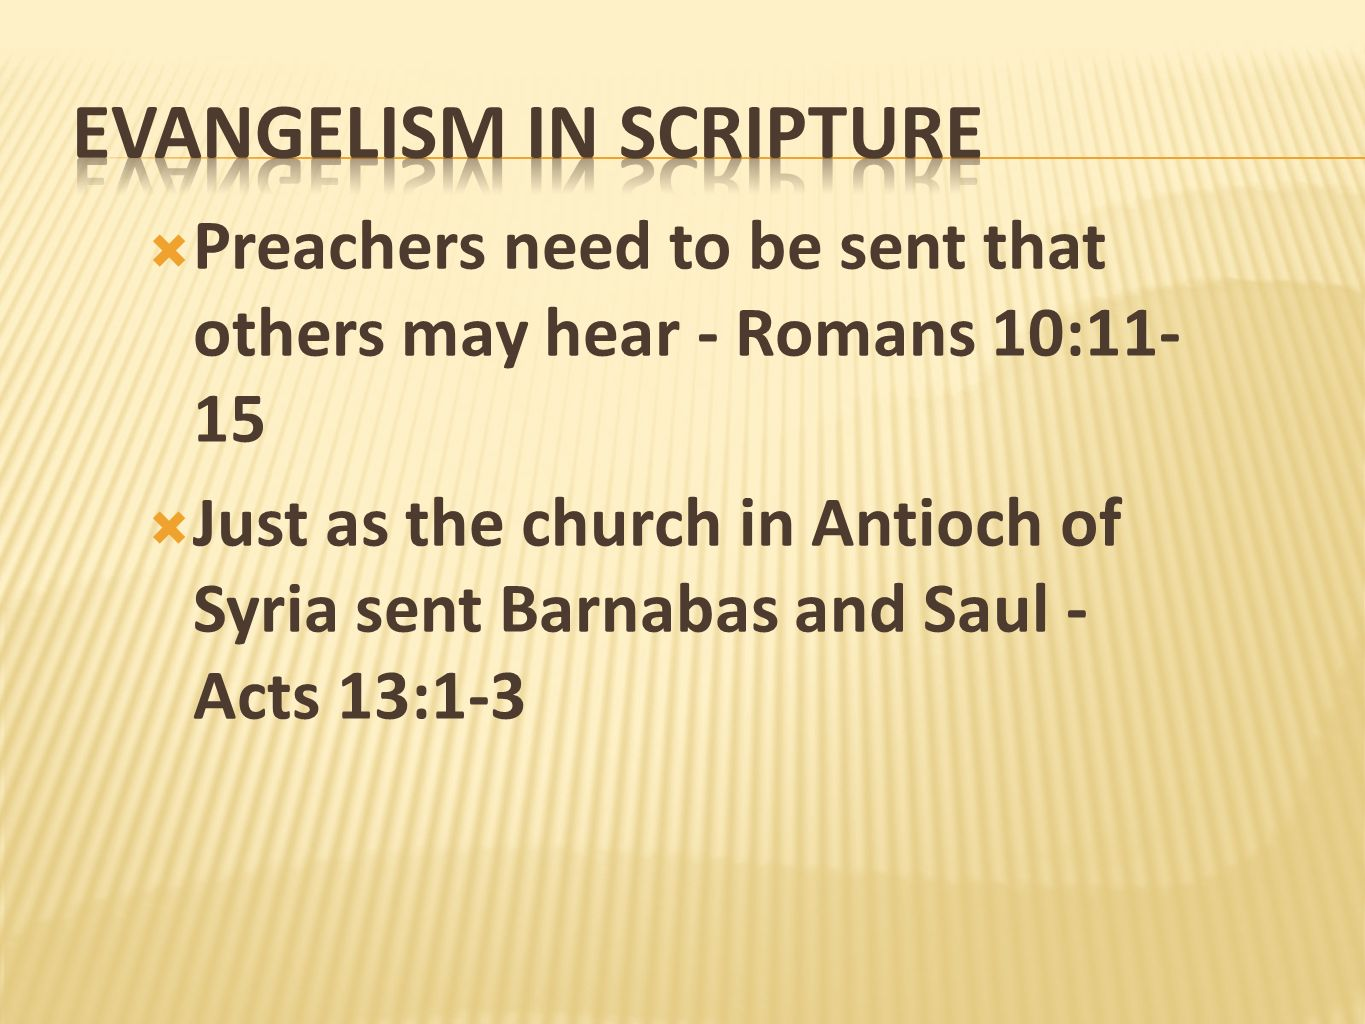 Evangelism in scripture